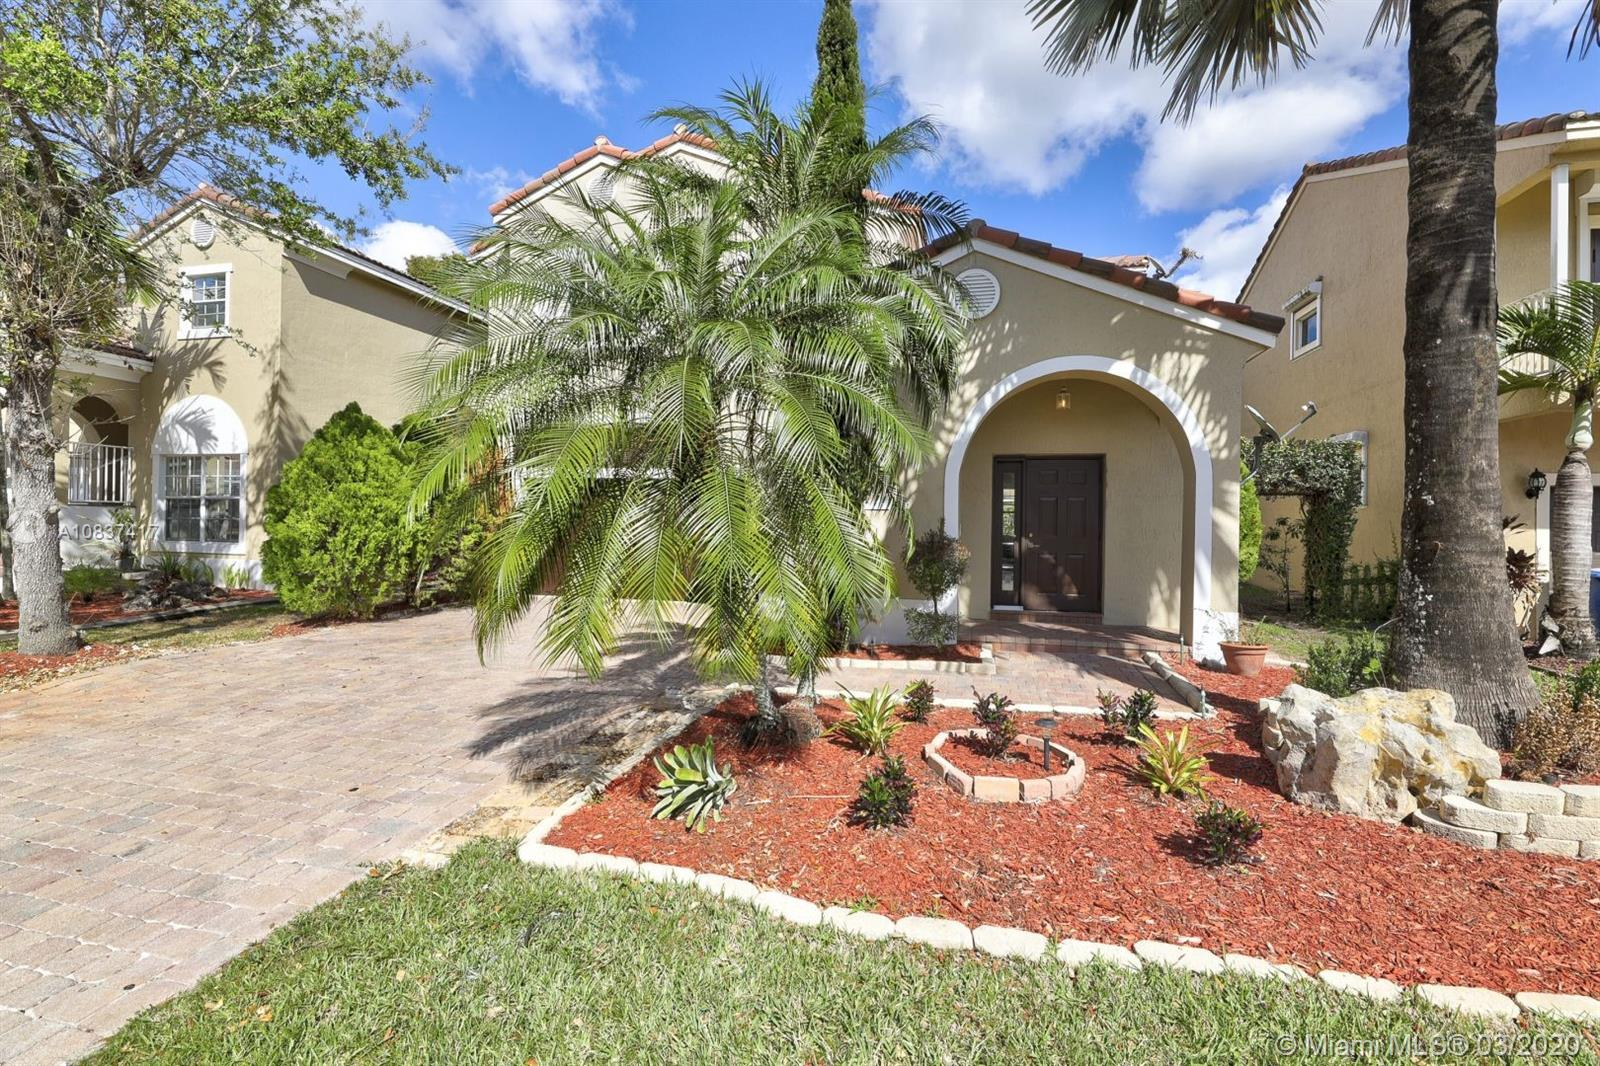 939 NW 127th Ave, Coral Springs, FL 33071